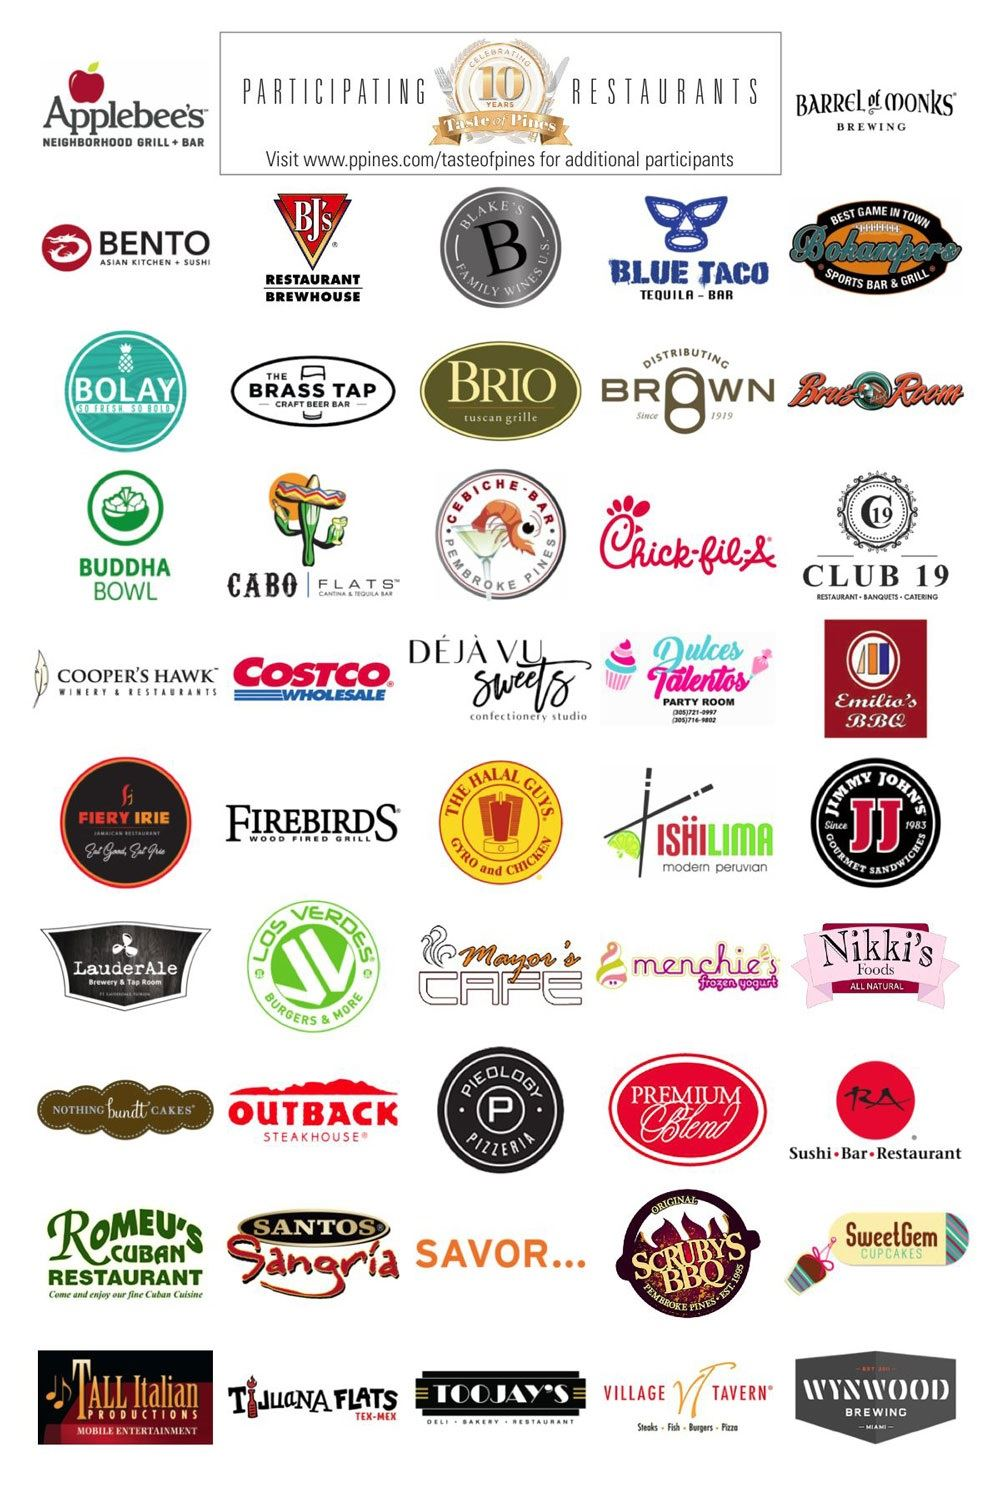 Taste-of-Pines-Participating-Restaurants 2019 Logos